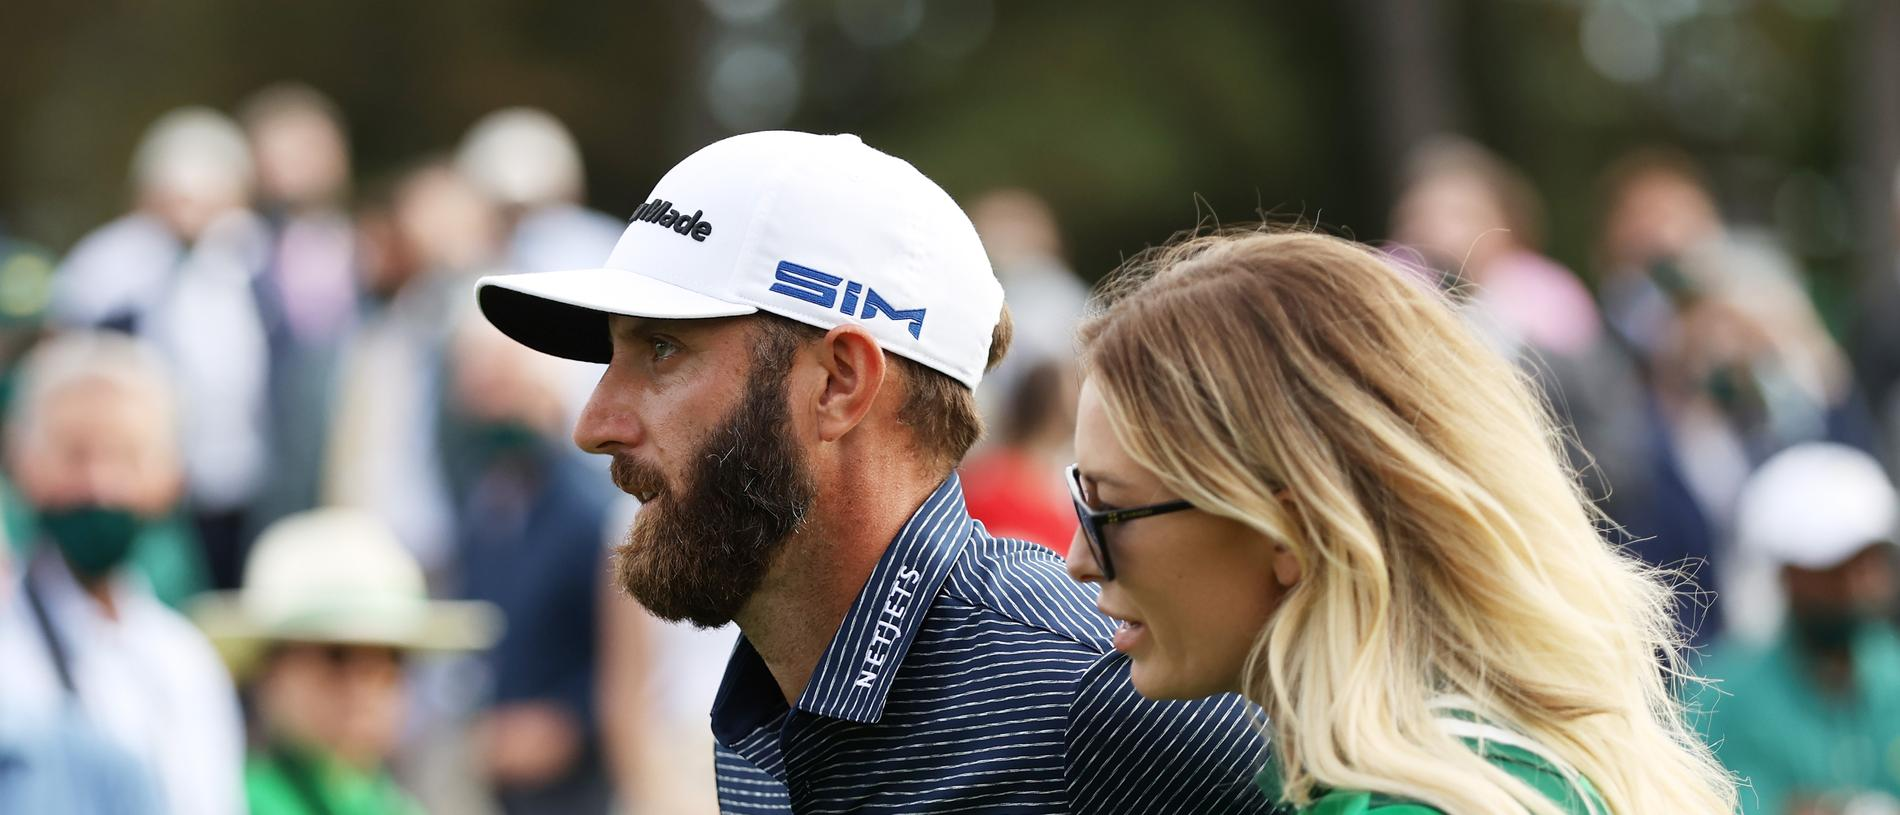 AUGUSTA, GEORGIA - NOVEMBER 15: Dustin Johnson of the United States walks with fiancée Paulina Gretzky after winning the Masters at Augusta National Golf Club on November 15, 2020 in Augusta, Georgia. (Photo by Patrick Smith/Getty Images)